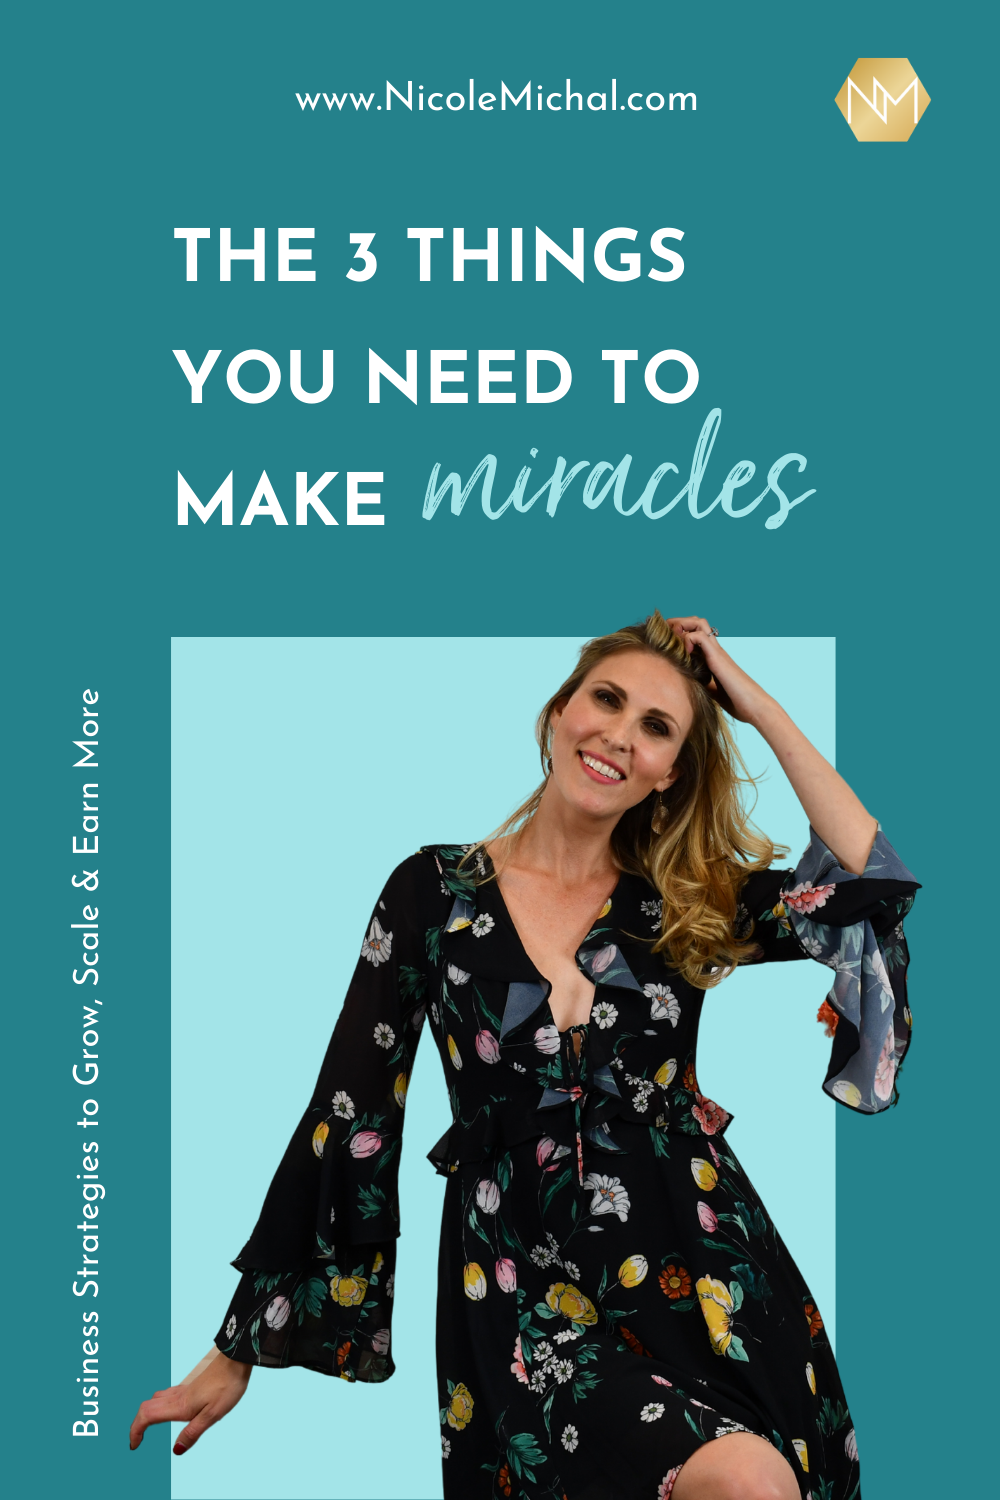 The 3 Things You Need to Make Miracles [TRANSCRIPT]